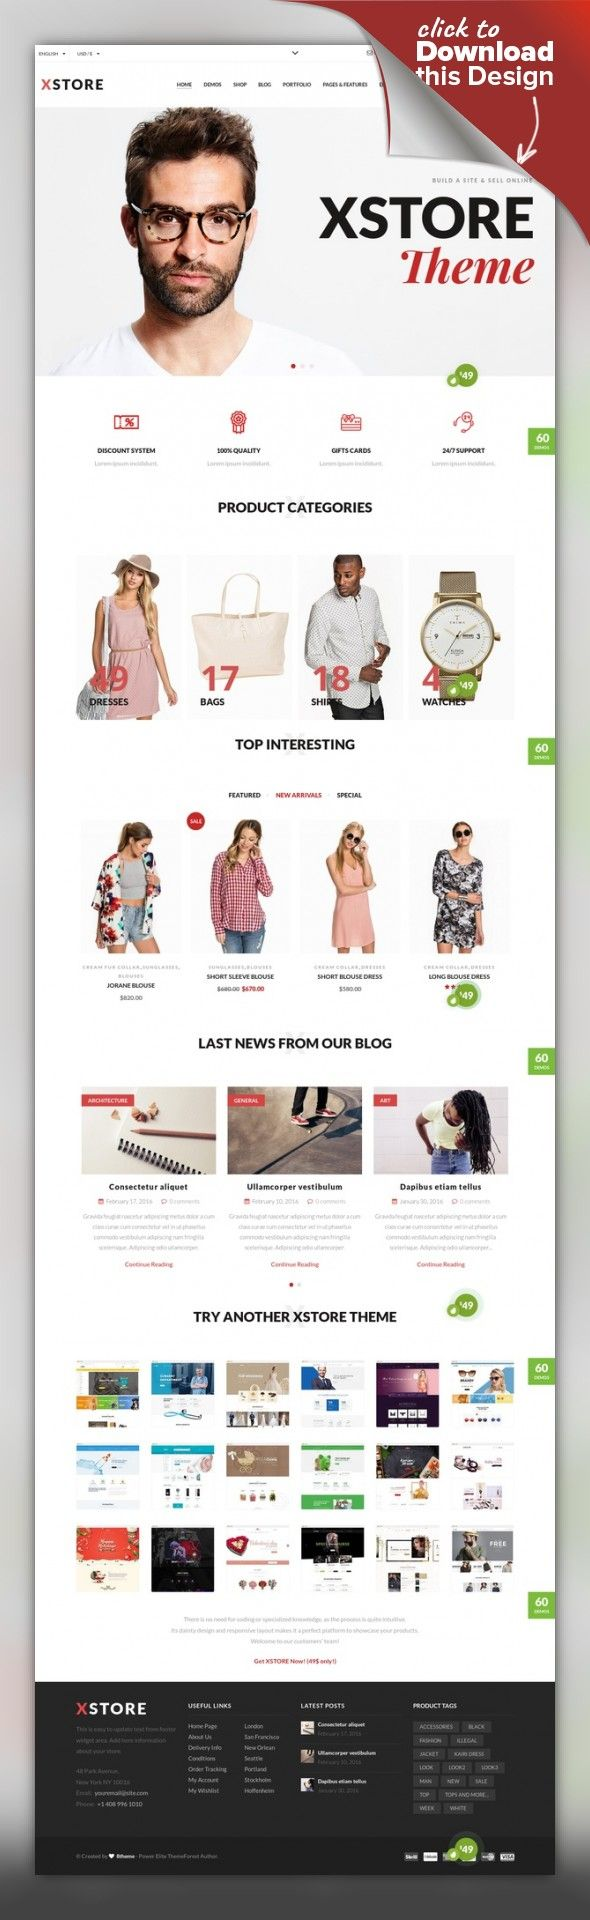 XStore - Responsive WooCommerce Theme clean, e-commerce, flat, minimal, modern, one page, shop, store Latest Version 4.7.1 – October 04 Changelog Revolution Slider Attract more customers or potential clients to your website by incorporating spectacular slides with amazing animations in y...